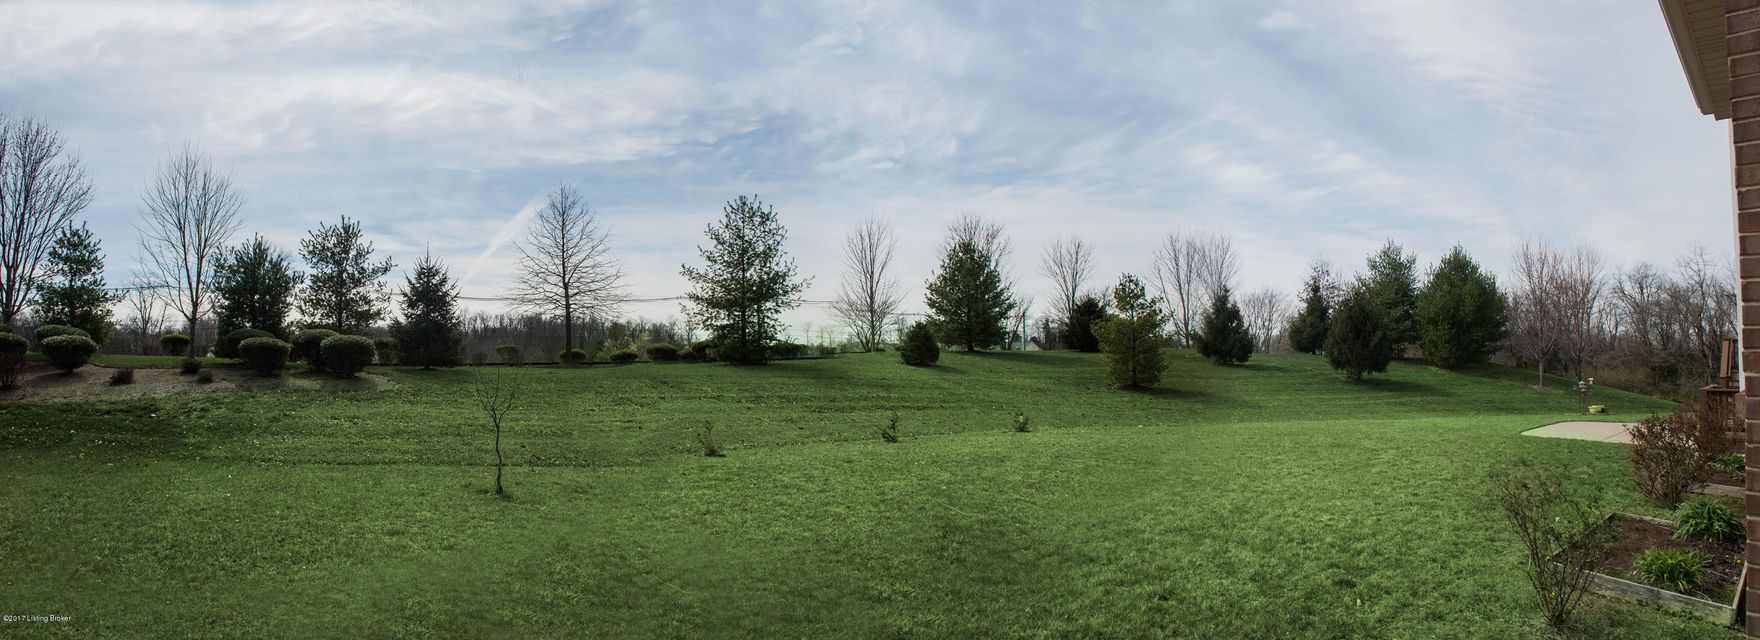 Additional photo for property listing at 11102 Rock Bend Way 11102 Rock Bend Way Louisville, Kentucky 40241 United States